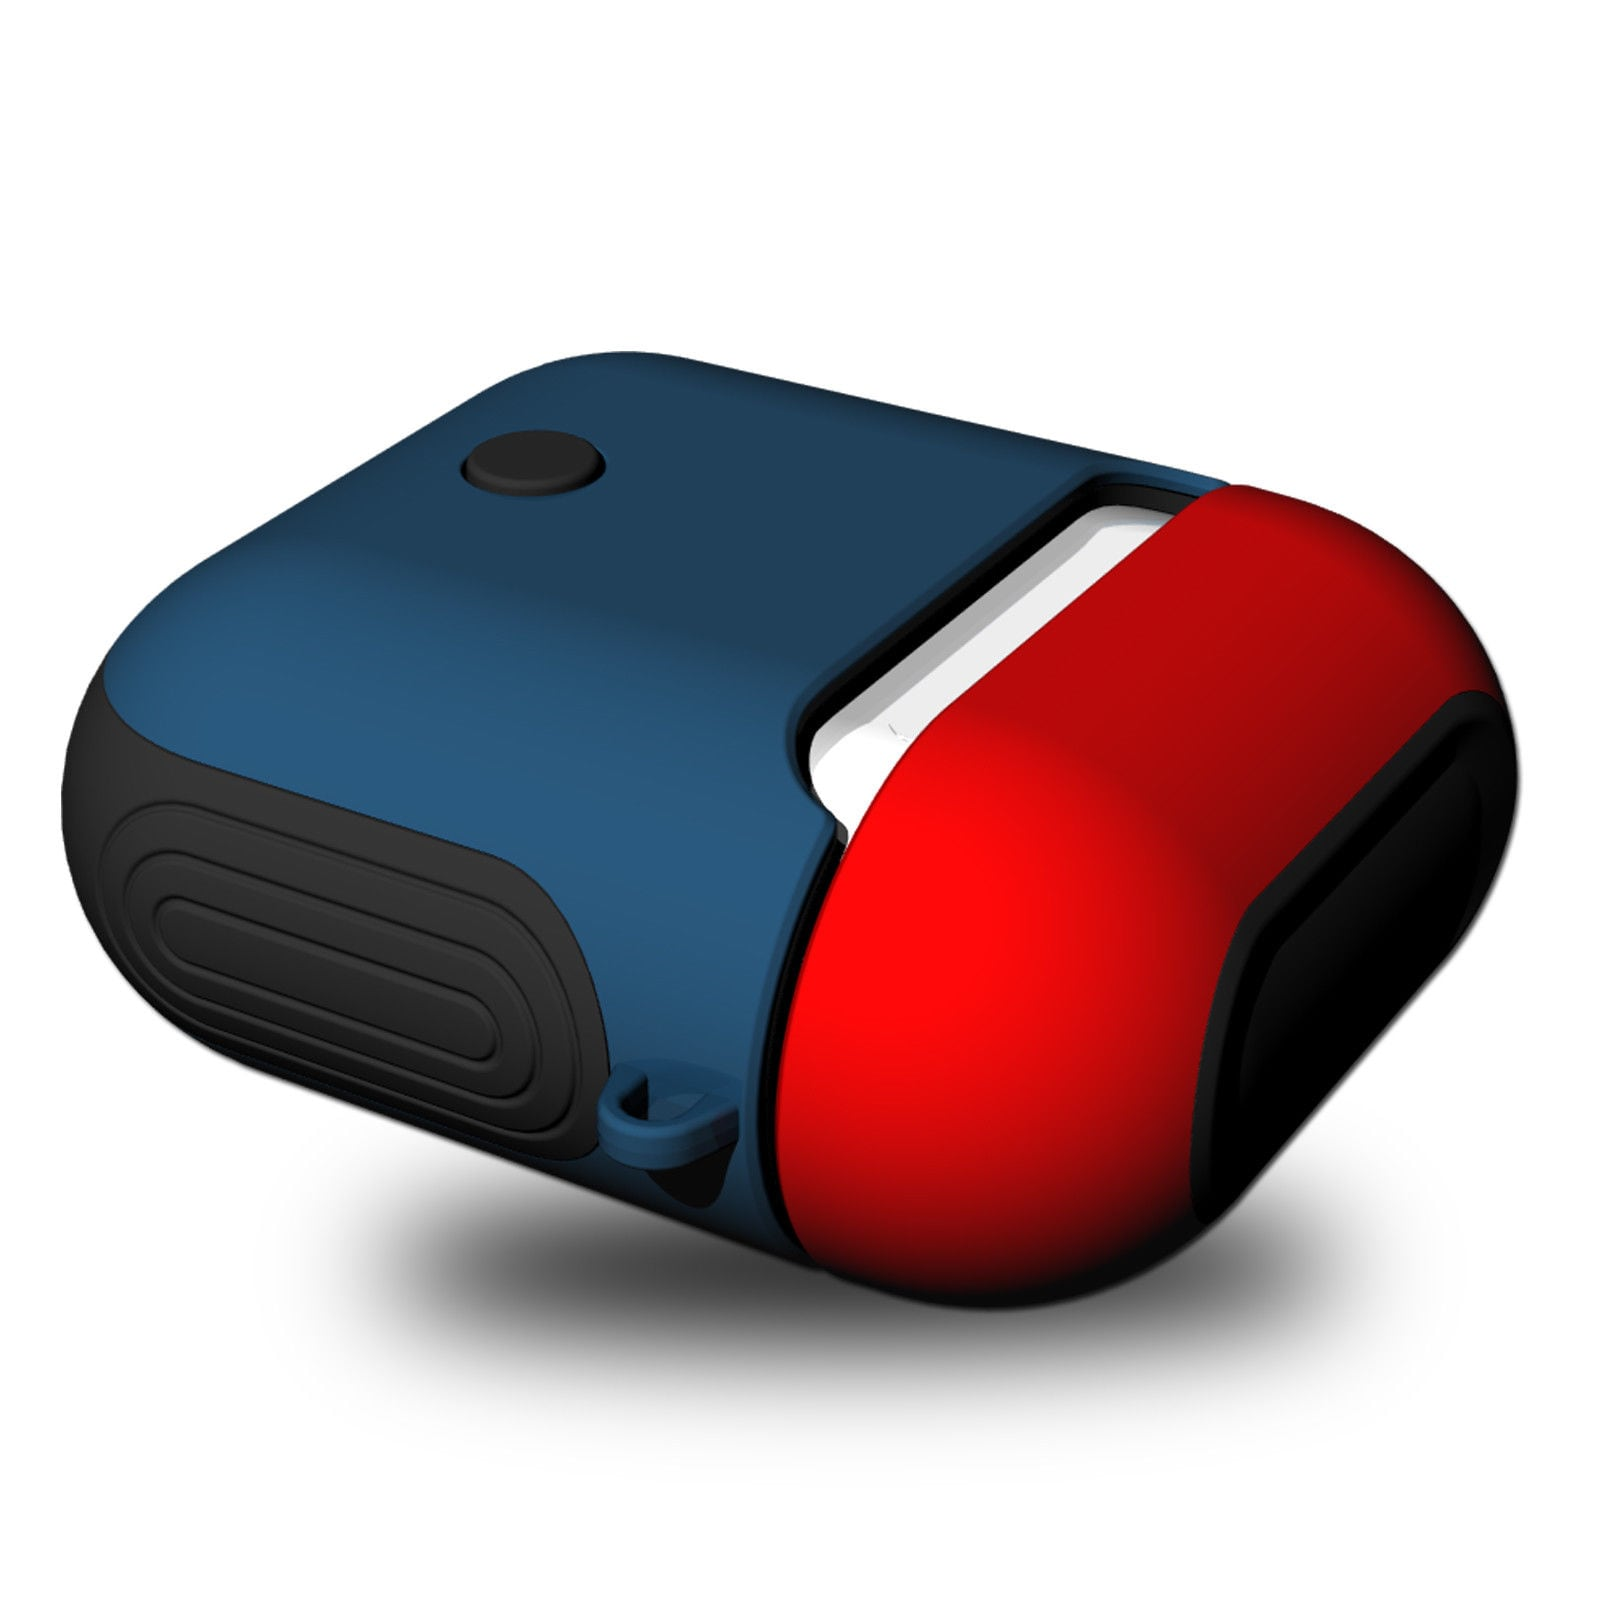 AirPods Silicone Case Protective Cover for Apple Airpod Charging Case Red blue - 1